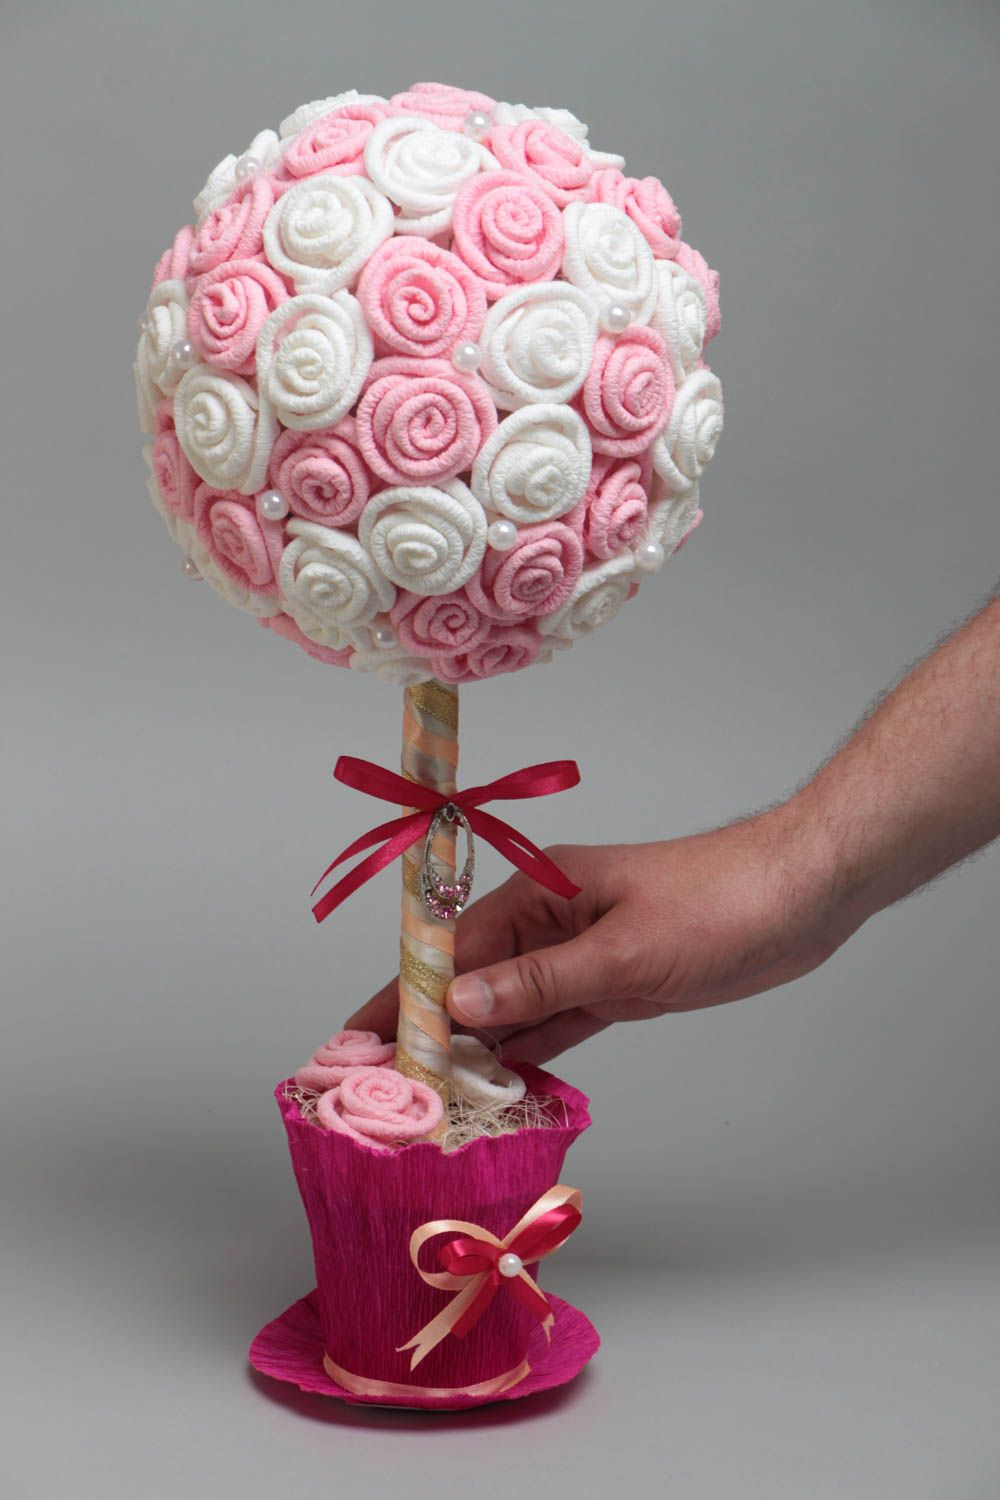 Handmade decorative topiary tree with white and pink paper roses with beads photo 5